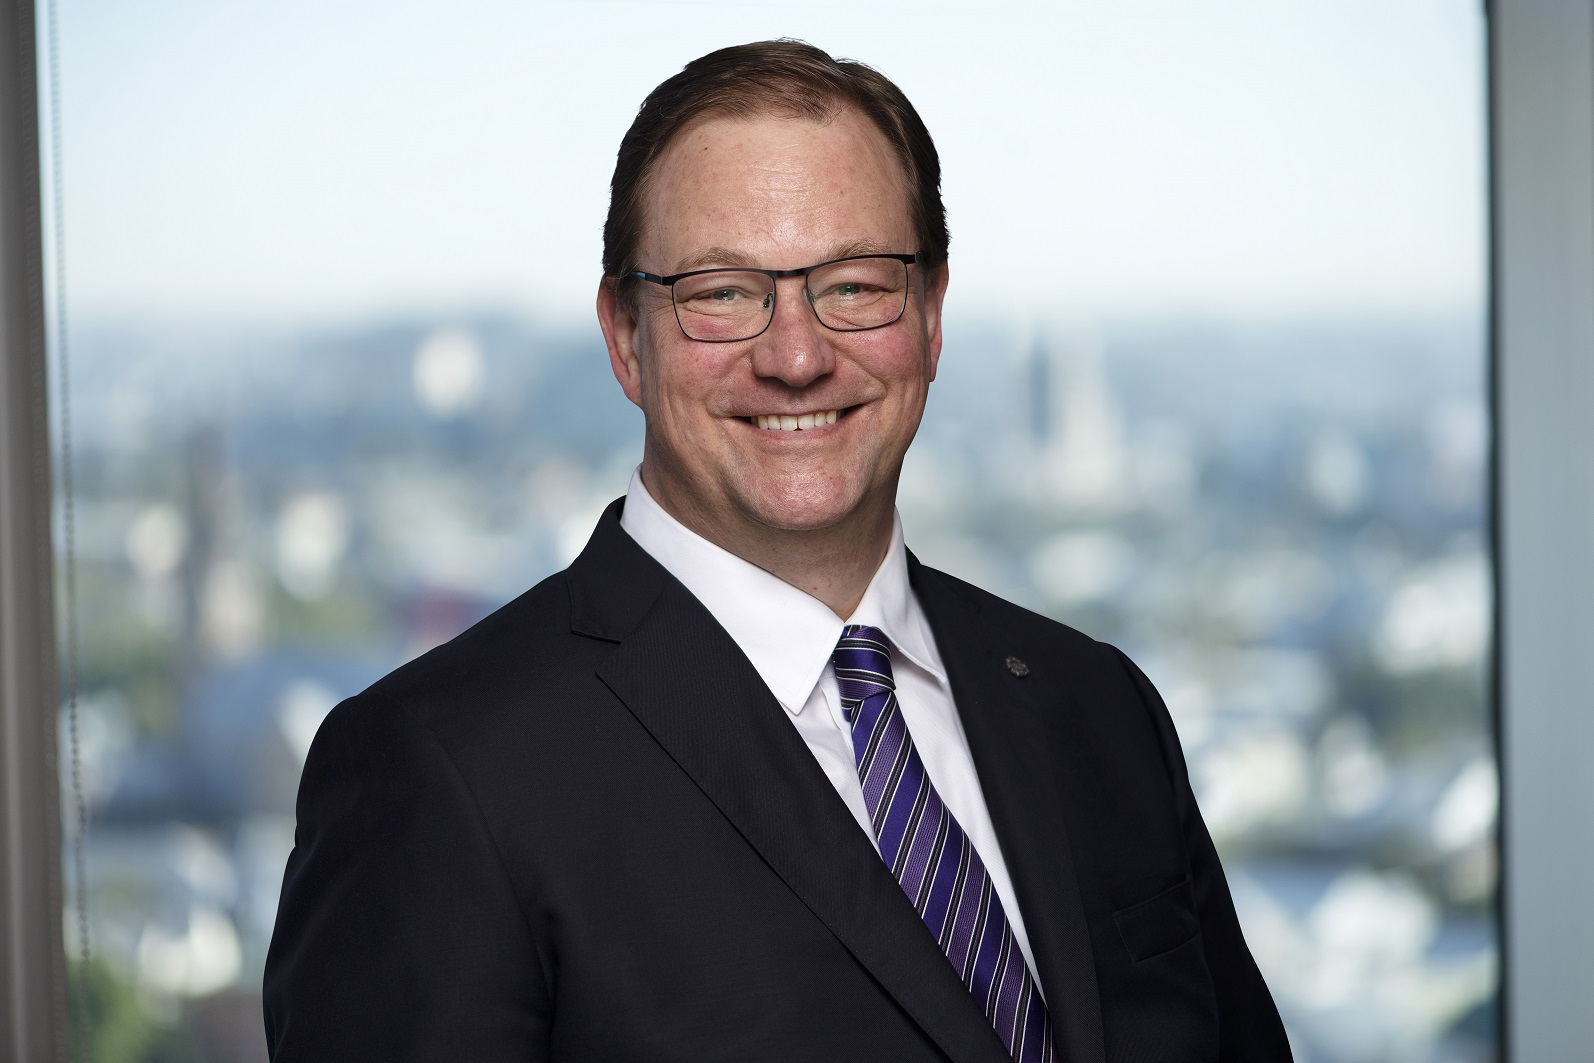 A headshot of LGIAsuper CIO Troy Rieck